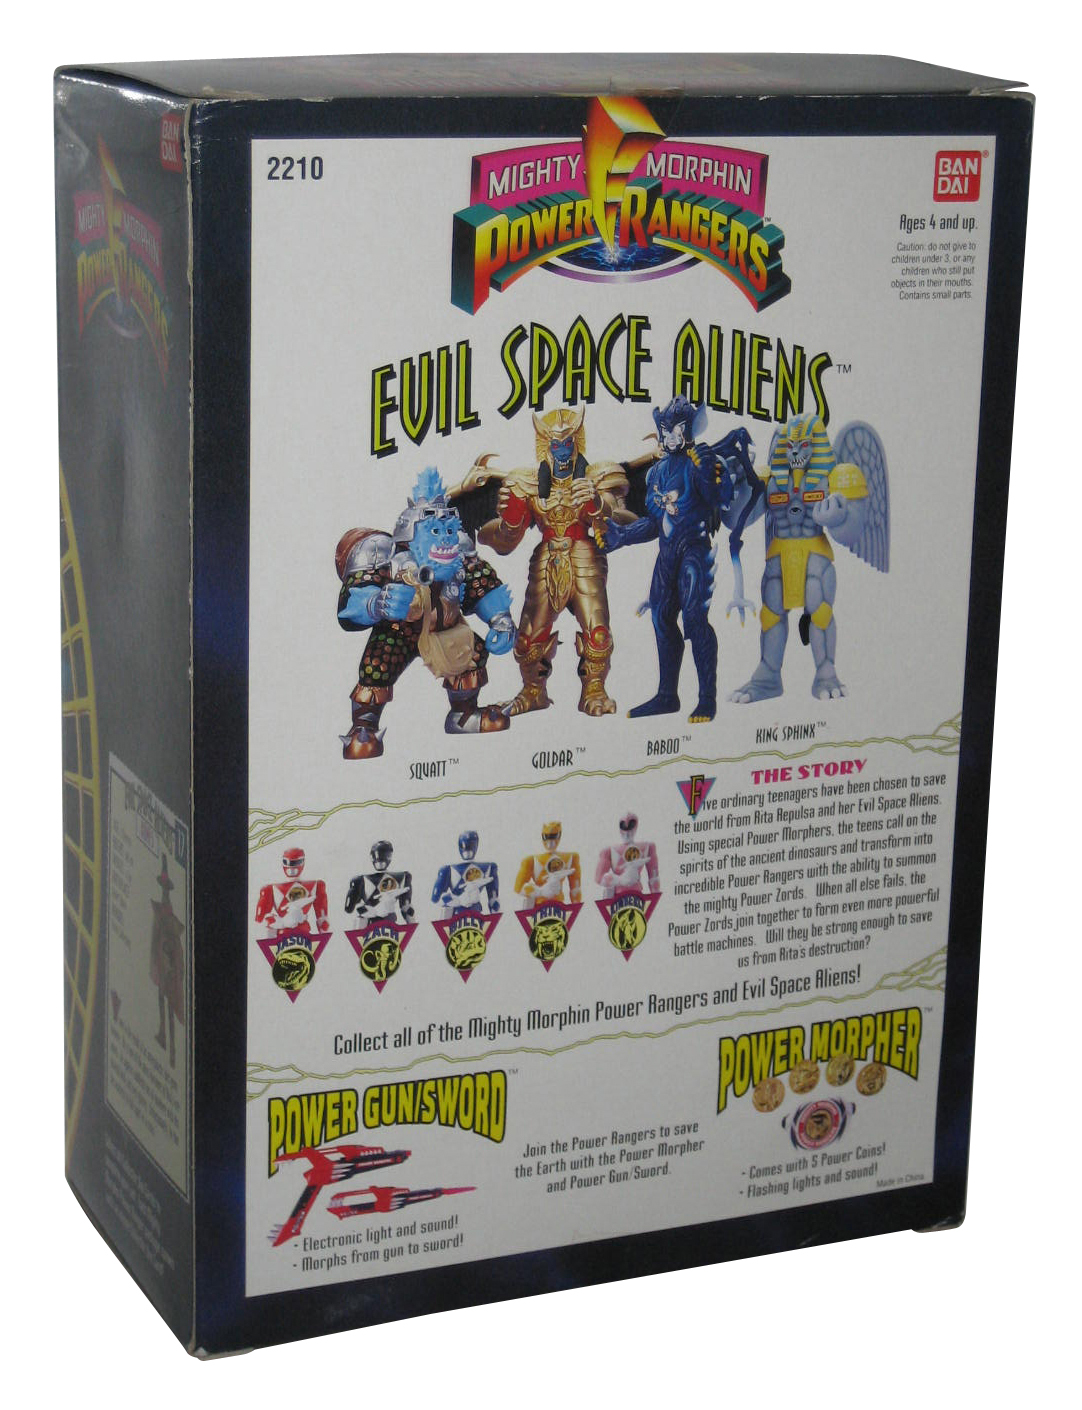 NEW IN Package Alien Power Save Our Planet Action Figure With Gun lights up